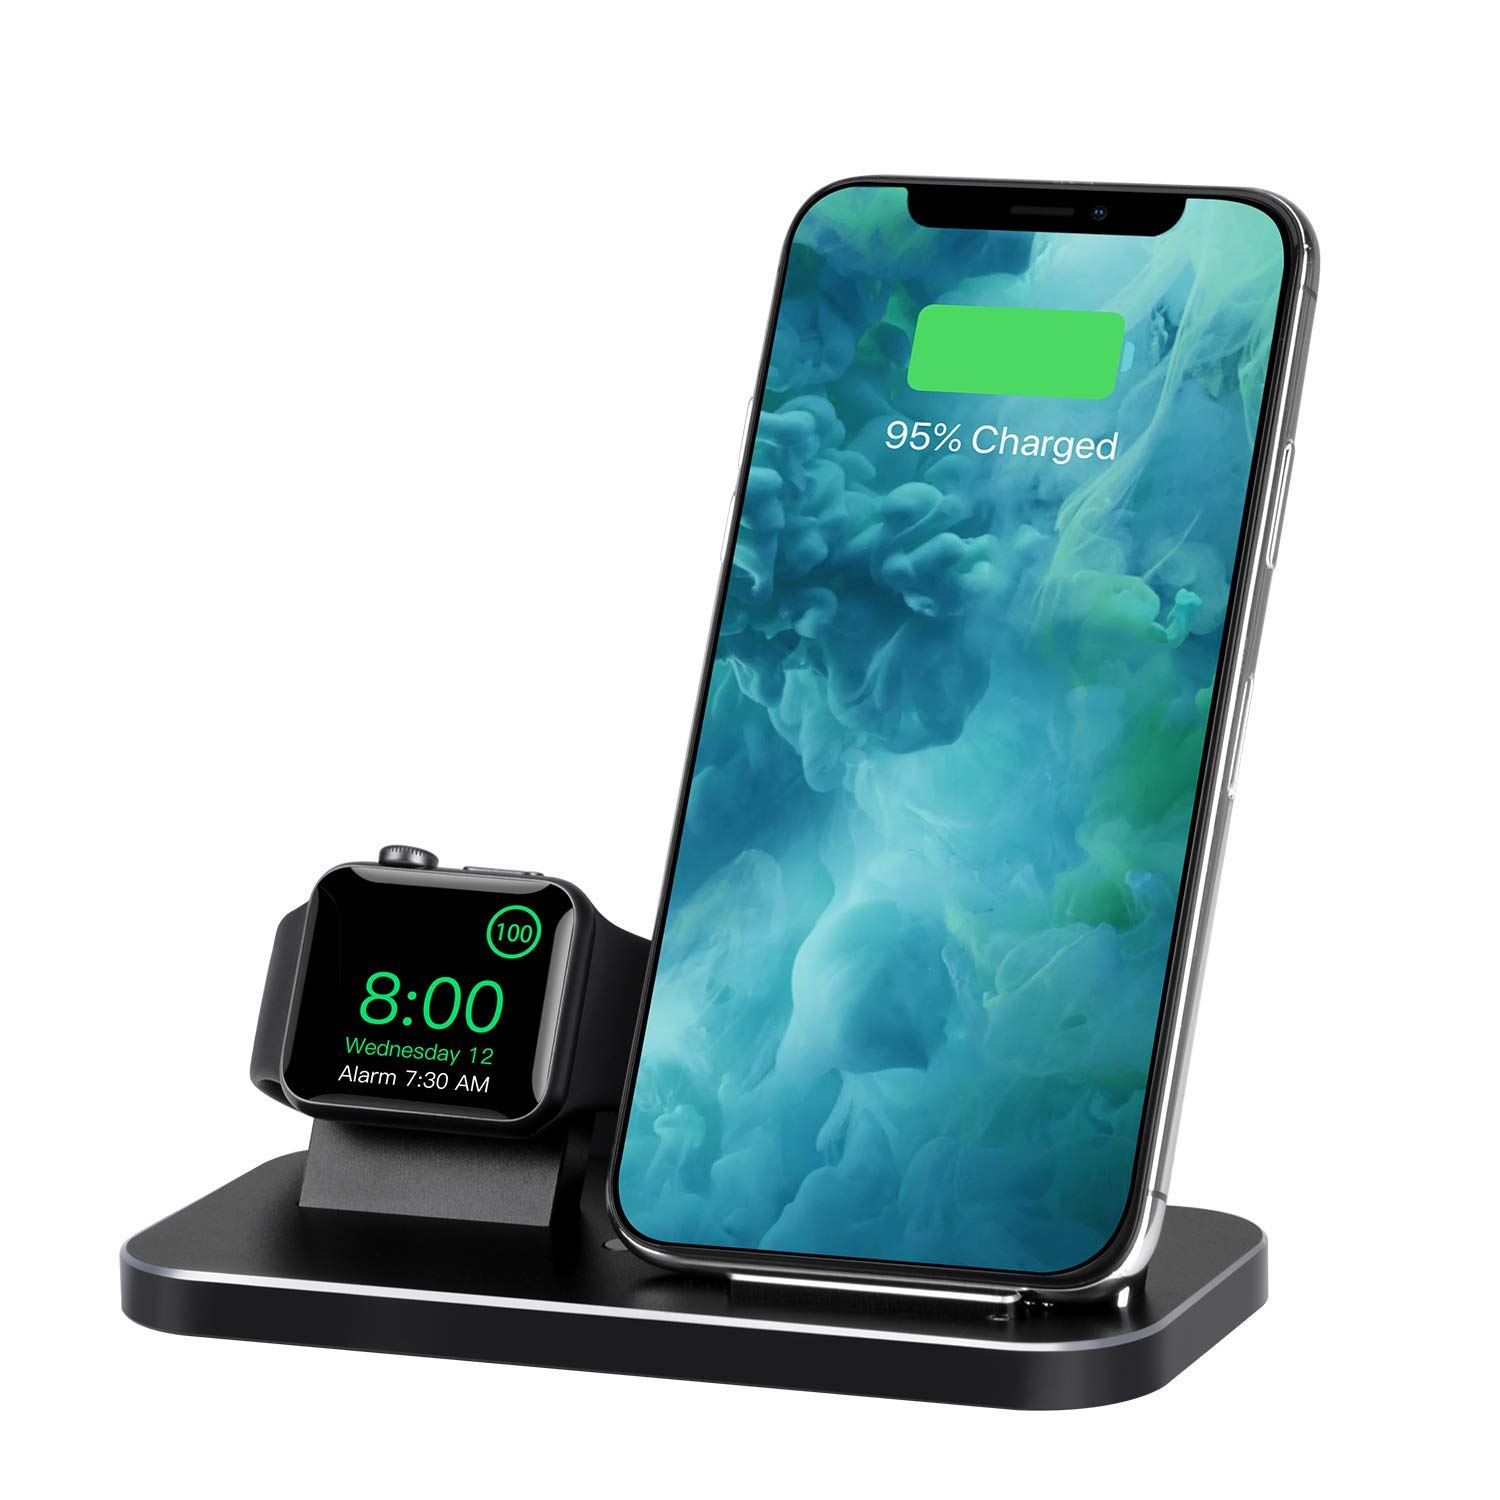 BNCHI 2 in 1 Aluminum Alloy Phone Wireless Charger Stand & Charging Station Compatible Watch Series 5/4/3/2/1/Phone11/11pro/X/Xs/Xs MAX/8 Plus/8 (S1-Black) by BNCHI